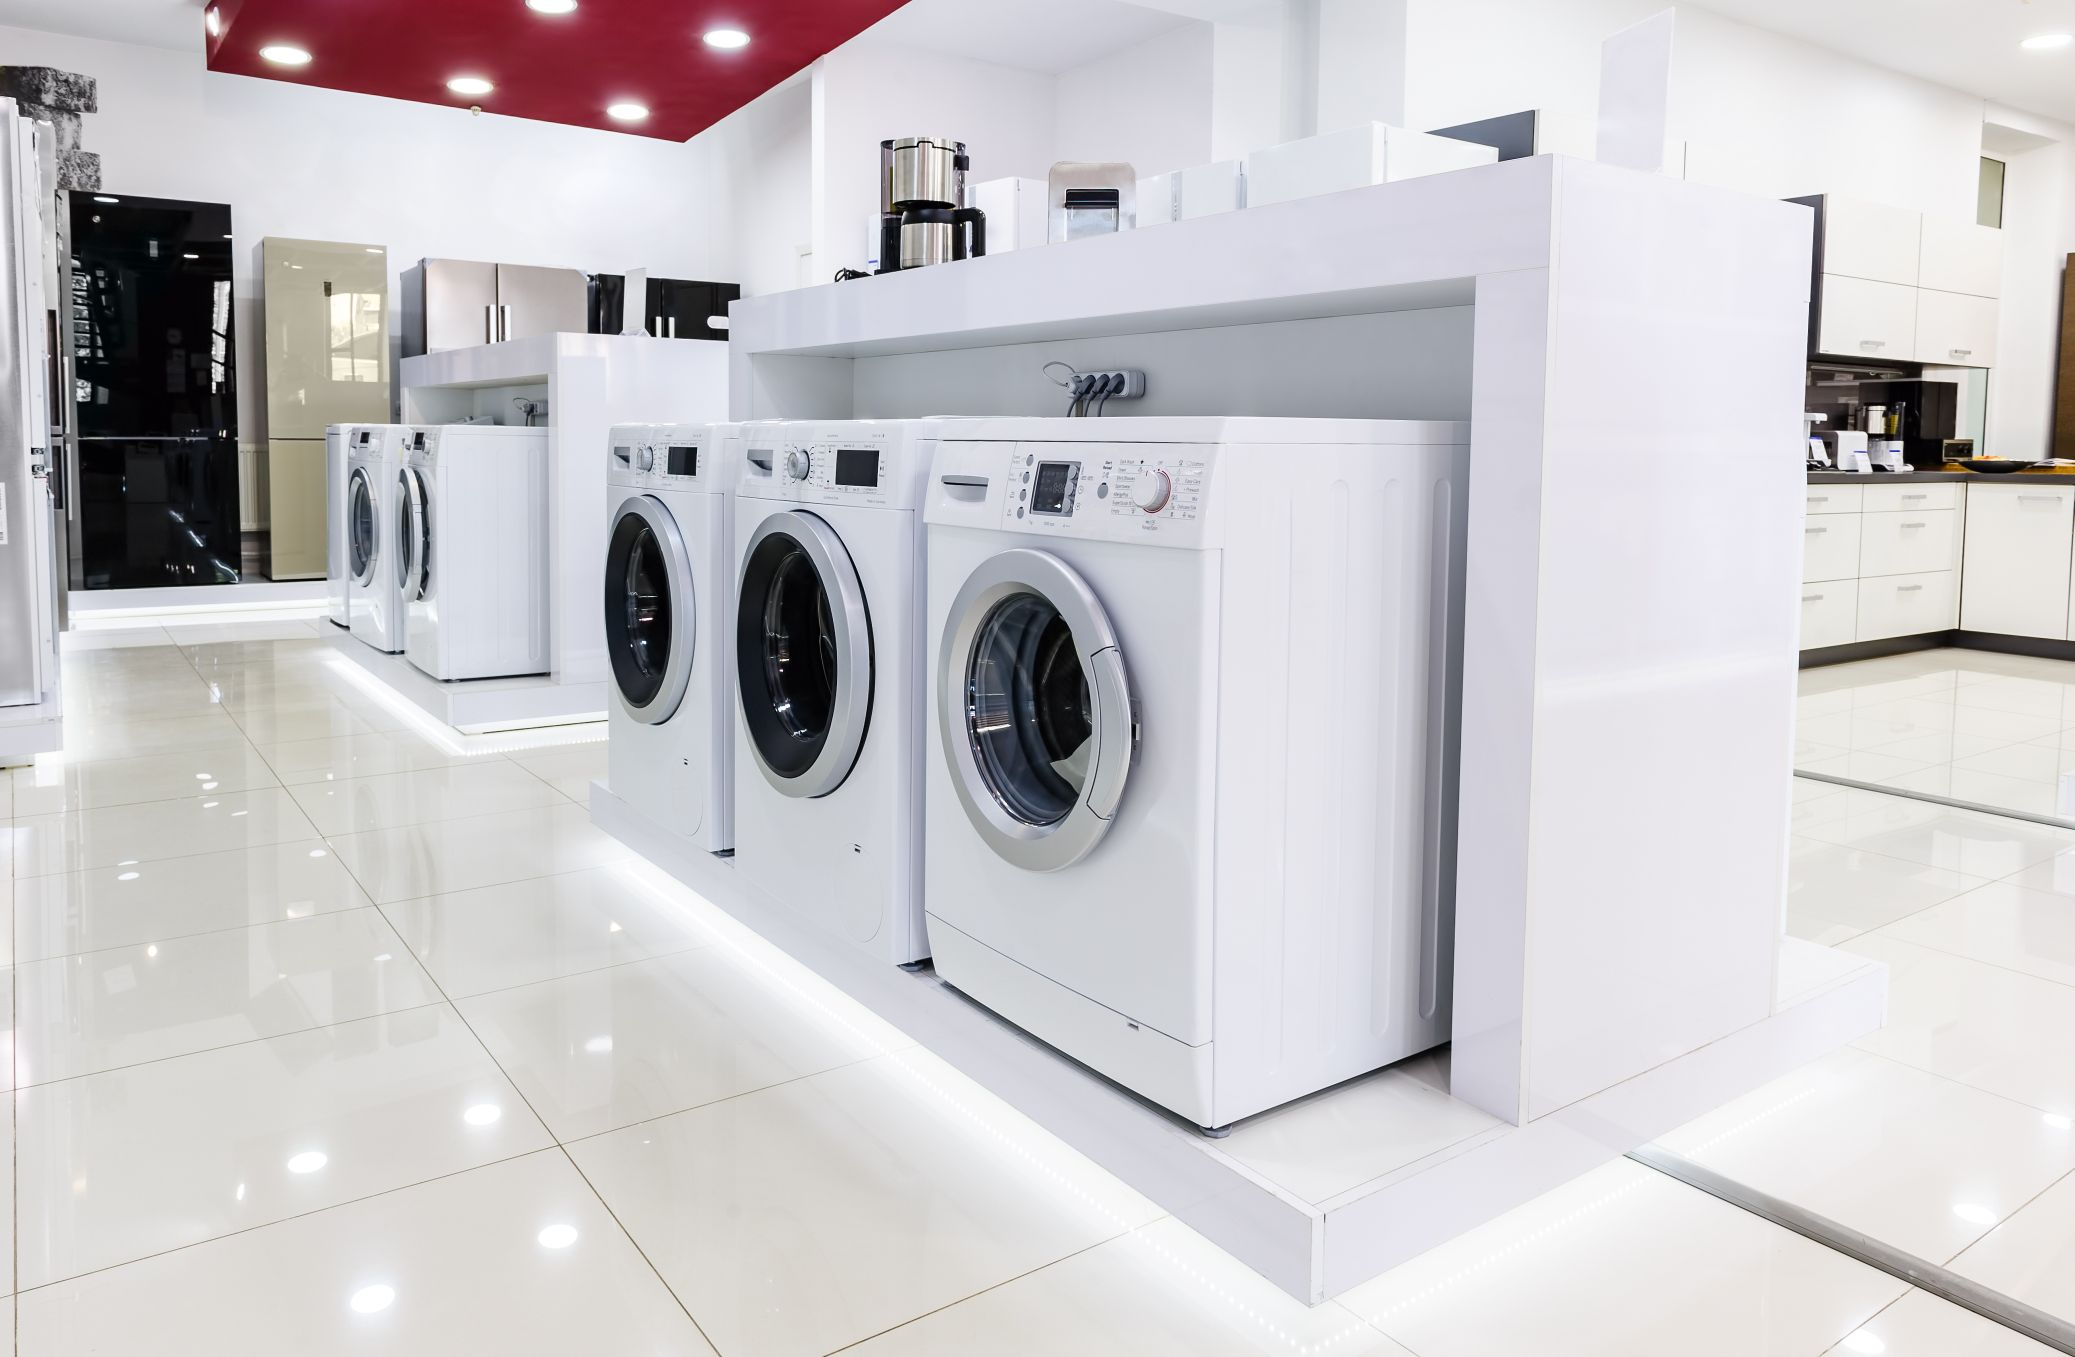 Washing Machines & Dryers - Dealers